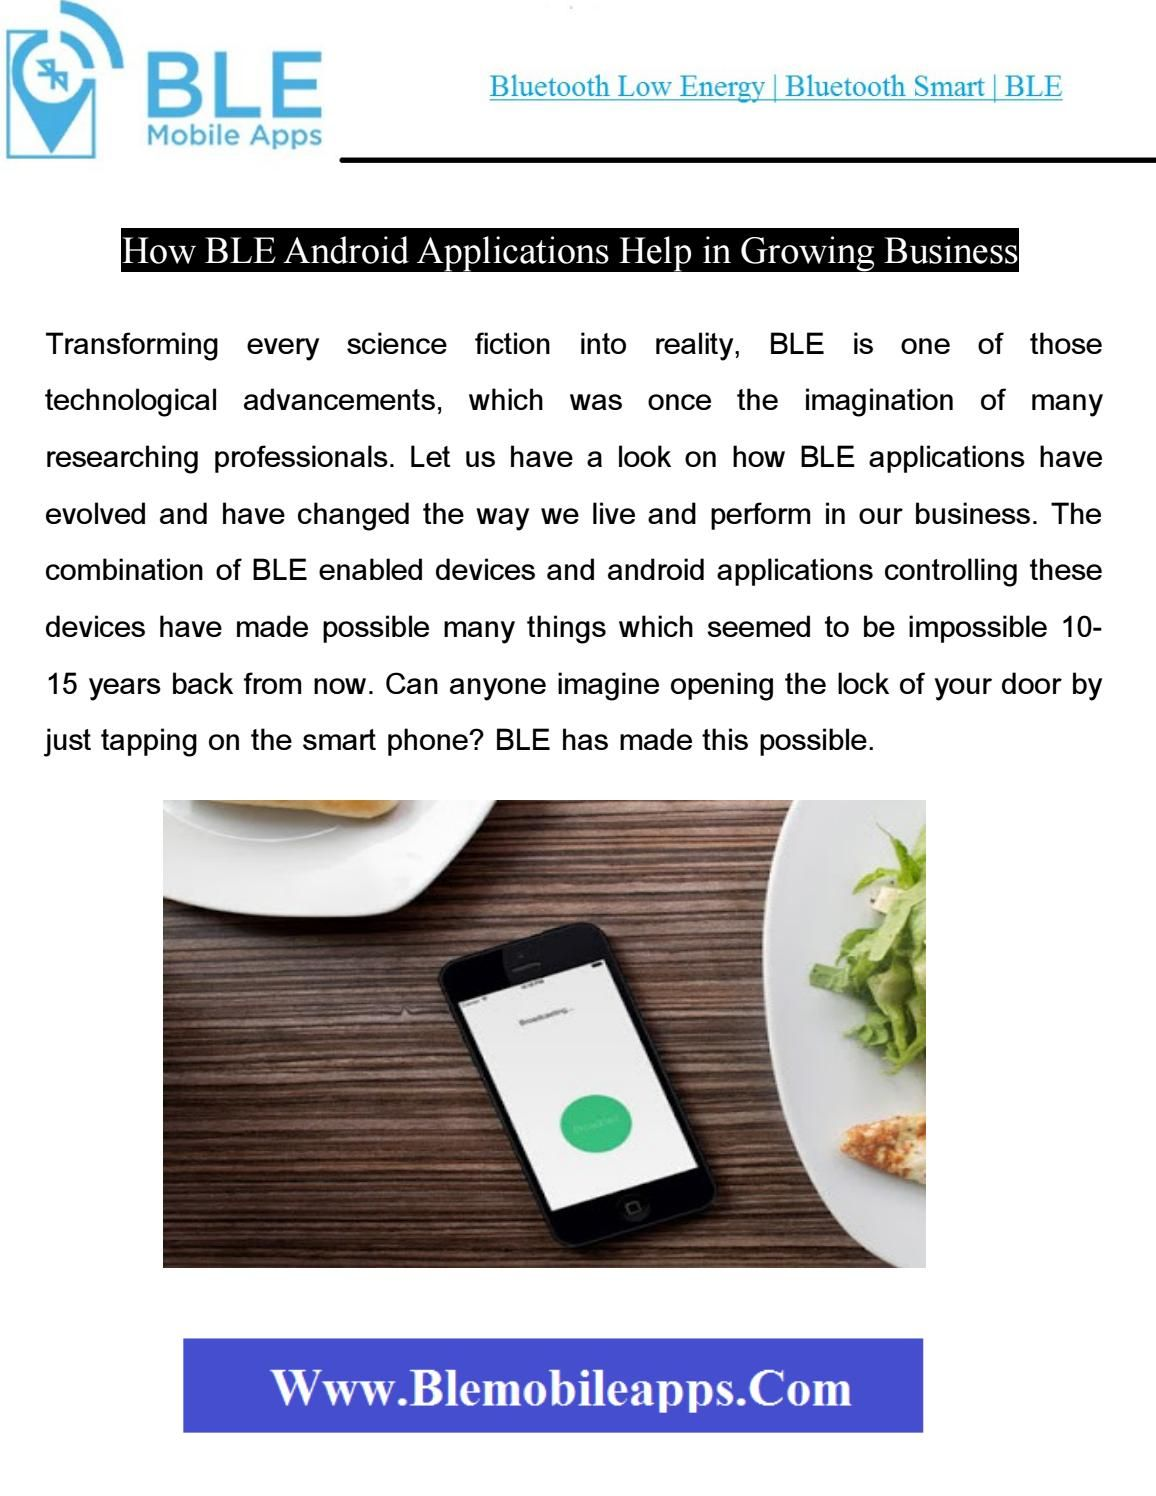 How ble android applications help in growing business in